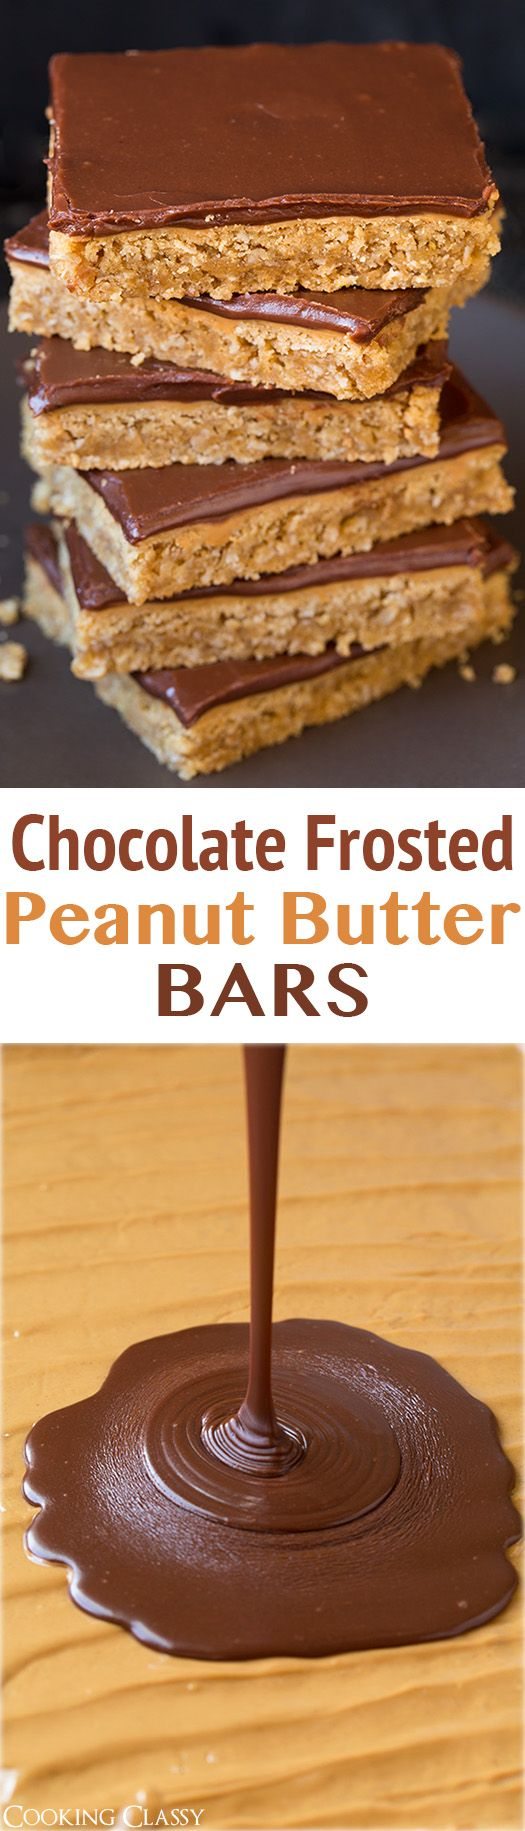 Chocolate Frosted Peanut Butter Bars - this is the best cookie bar ...